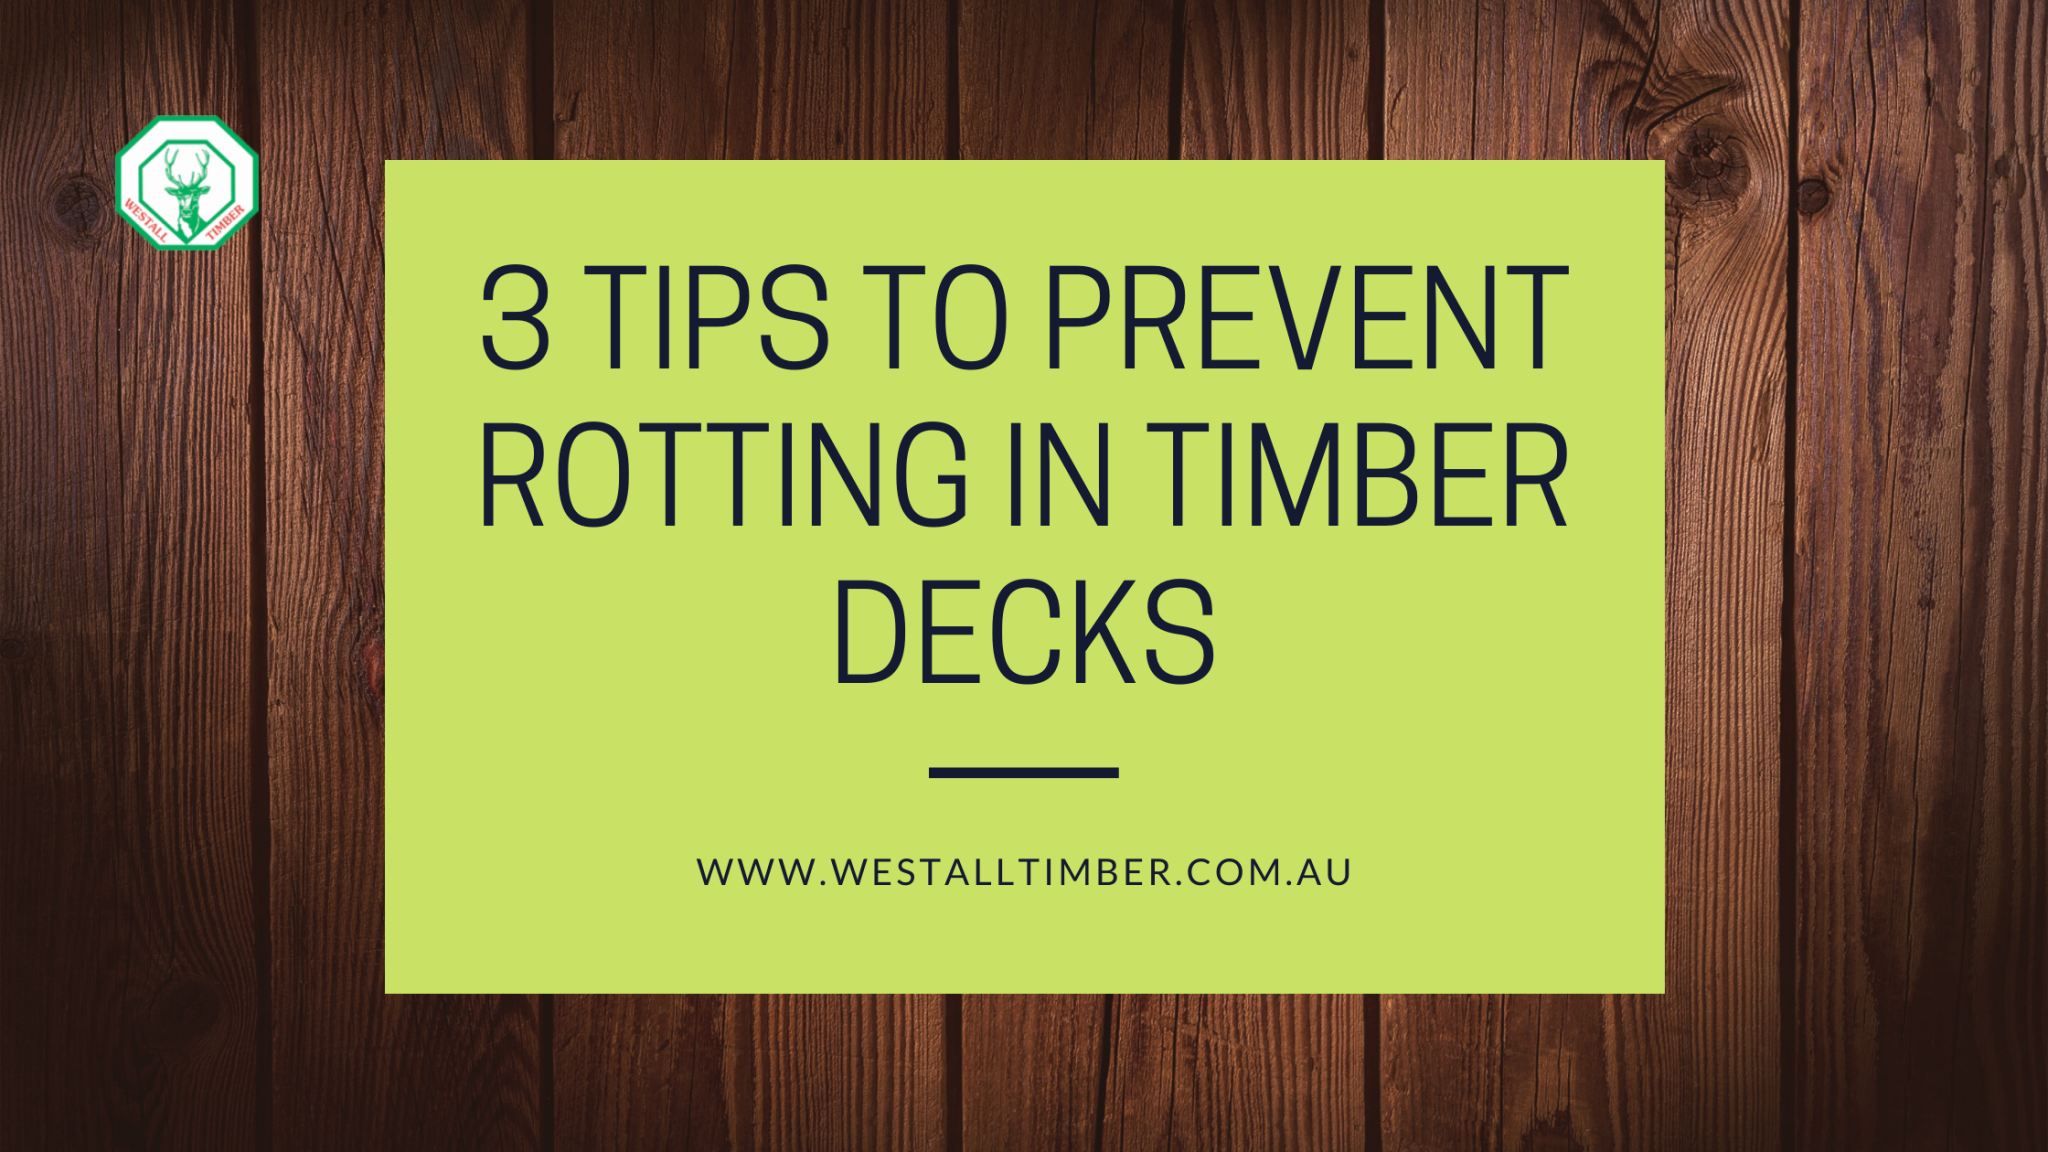 3 Tips to Prevent Rotting in Timber Decks - 3 Tips to Prevent Rotting in Timber Decks | Westall | Springvale